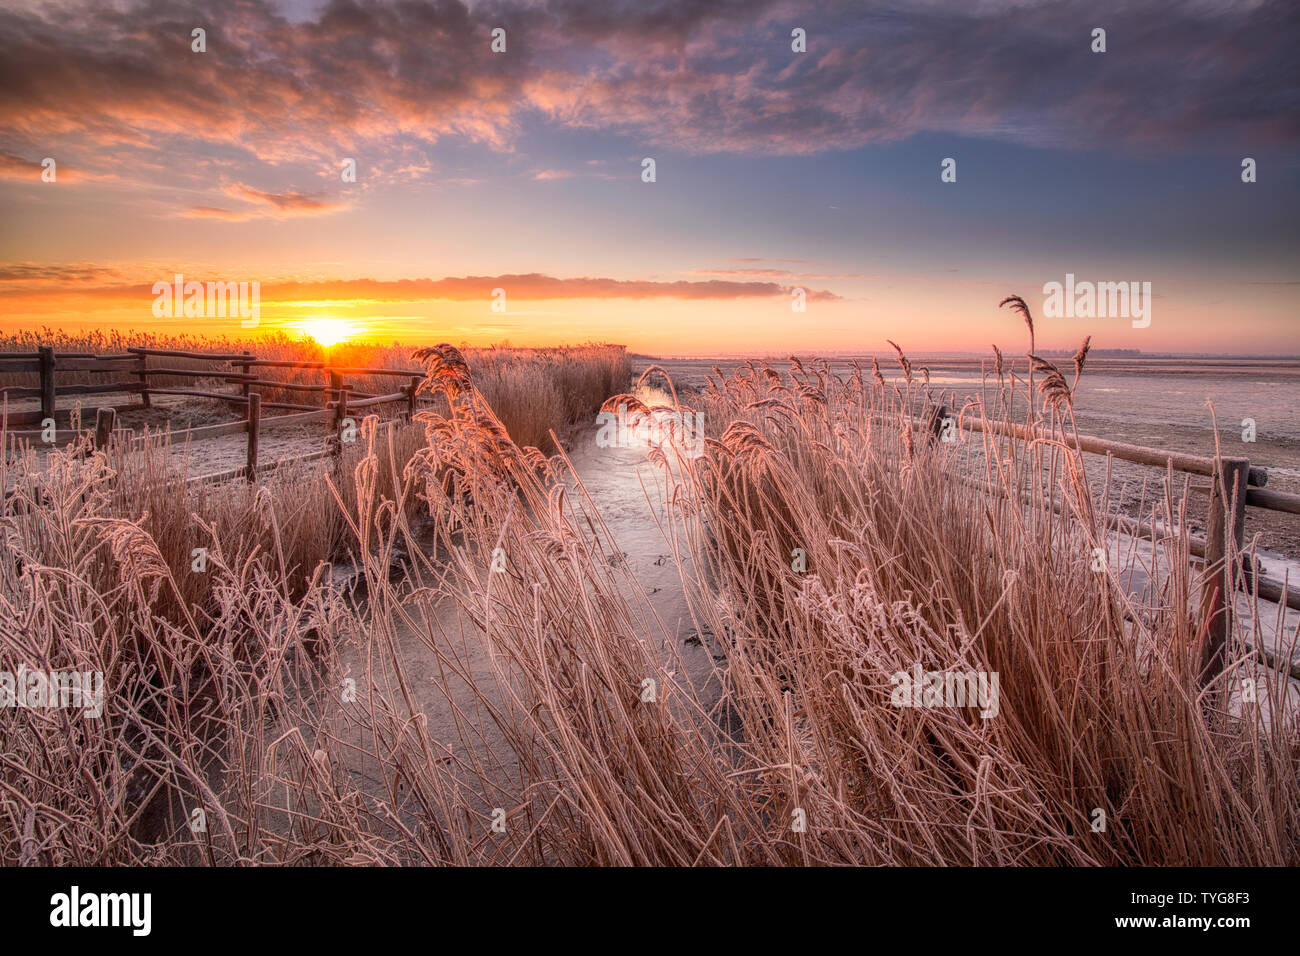 A winter landscape in the Netherlands with a beautiful sunrise with bright colours in the sky and frost on the fields at Lauwersmeer National Park Stock Photo